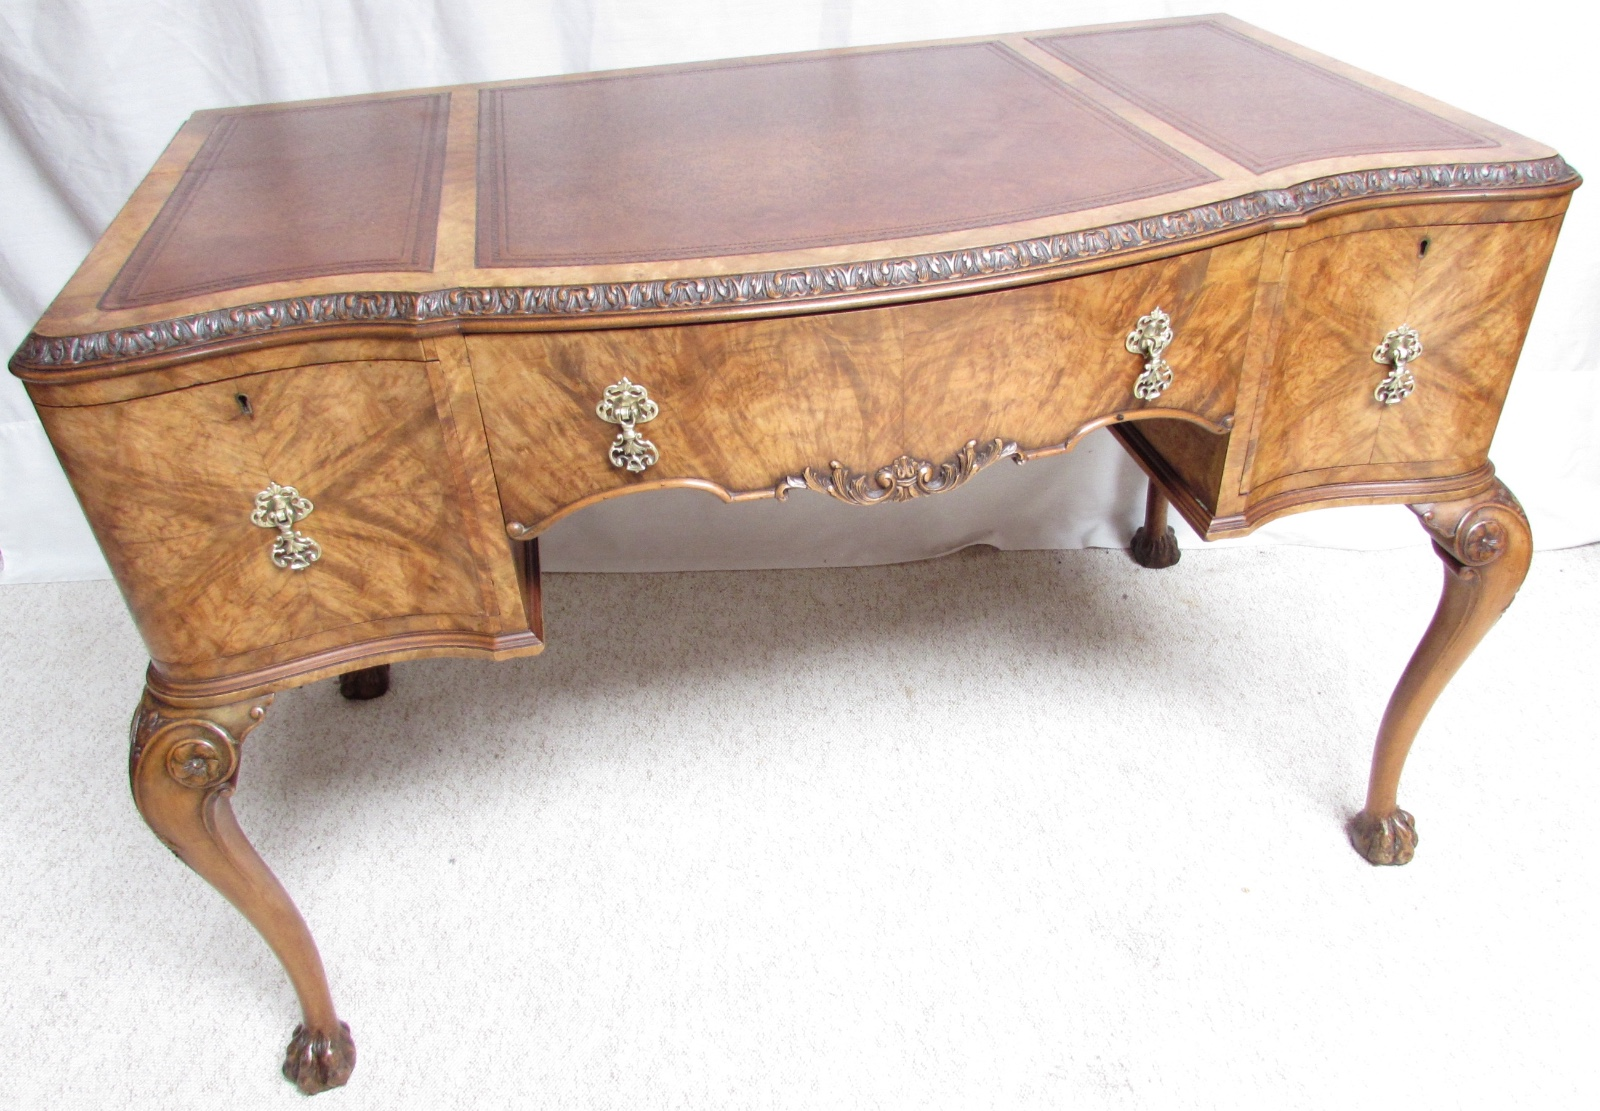 Sussex Antiques and Interiors image (2 of 3)